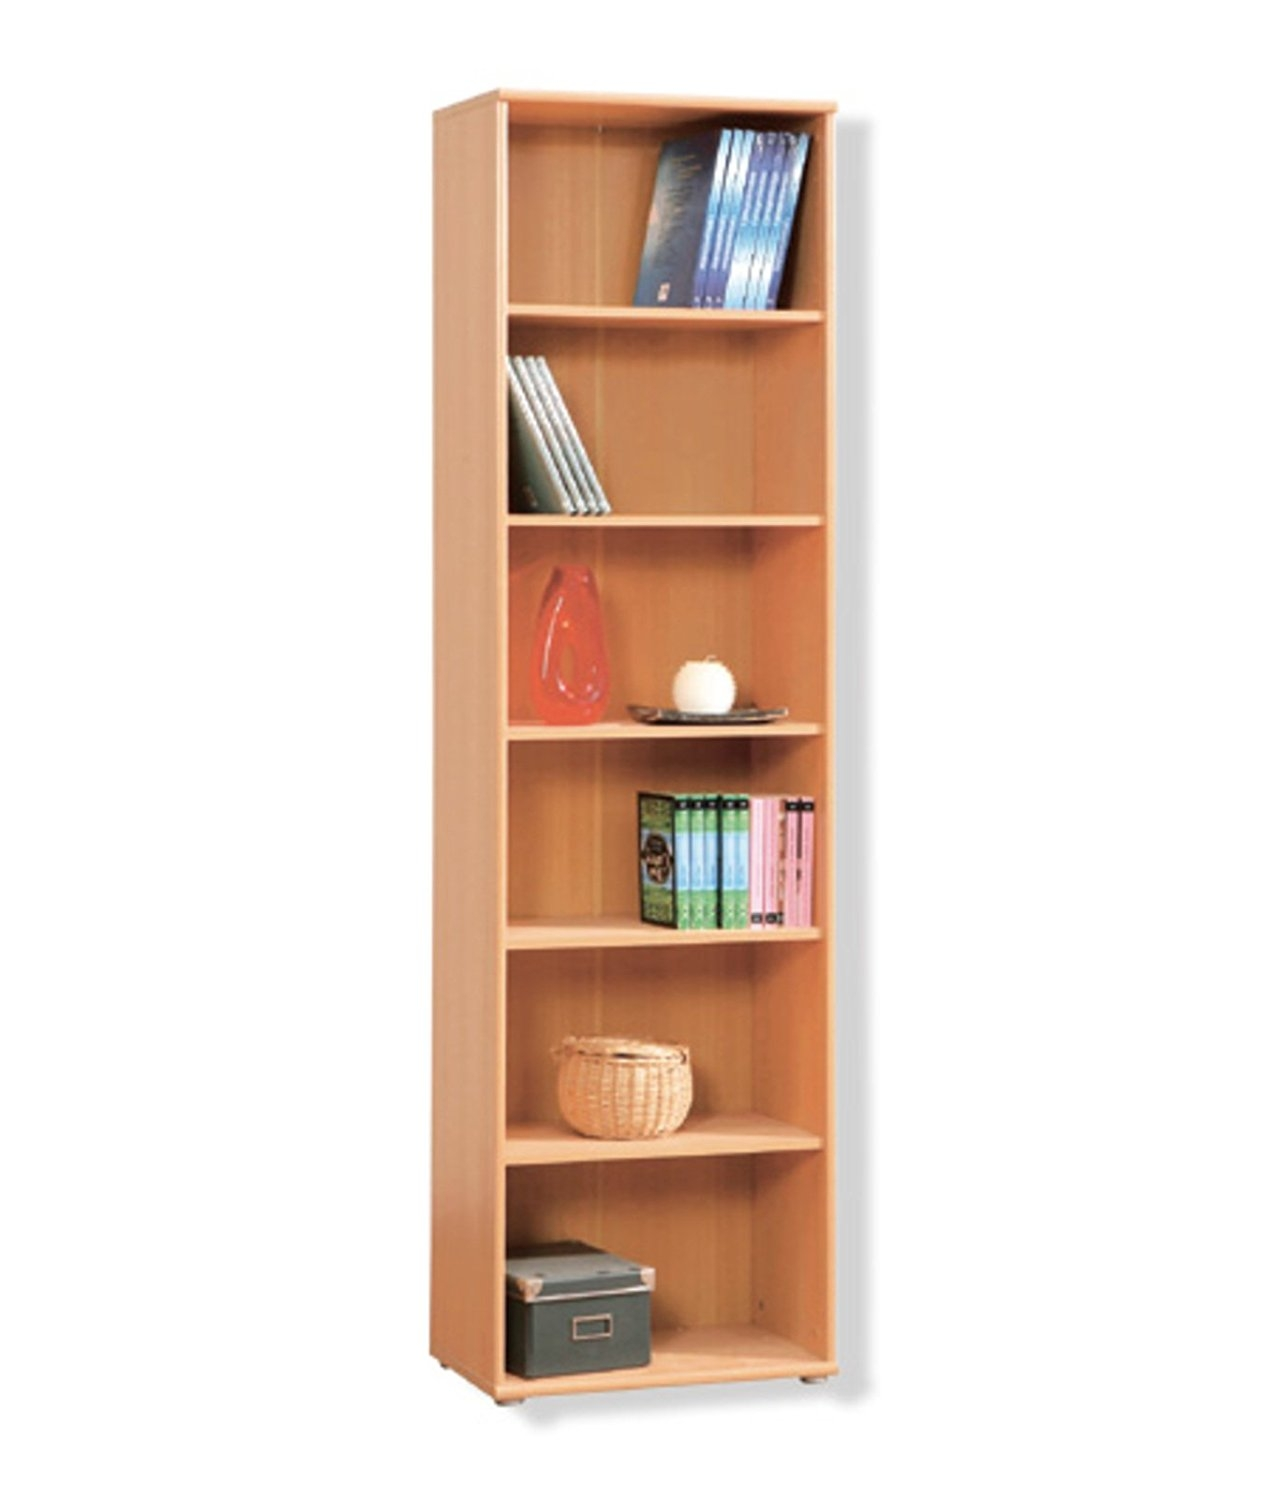 Tempra Tall Narrow Beech Bookcase Bookshelf Home Office Furniture Intended For Beech Bookcases (#13 of 15)